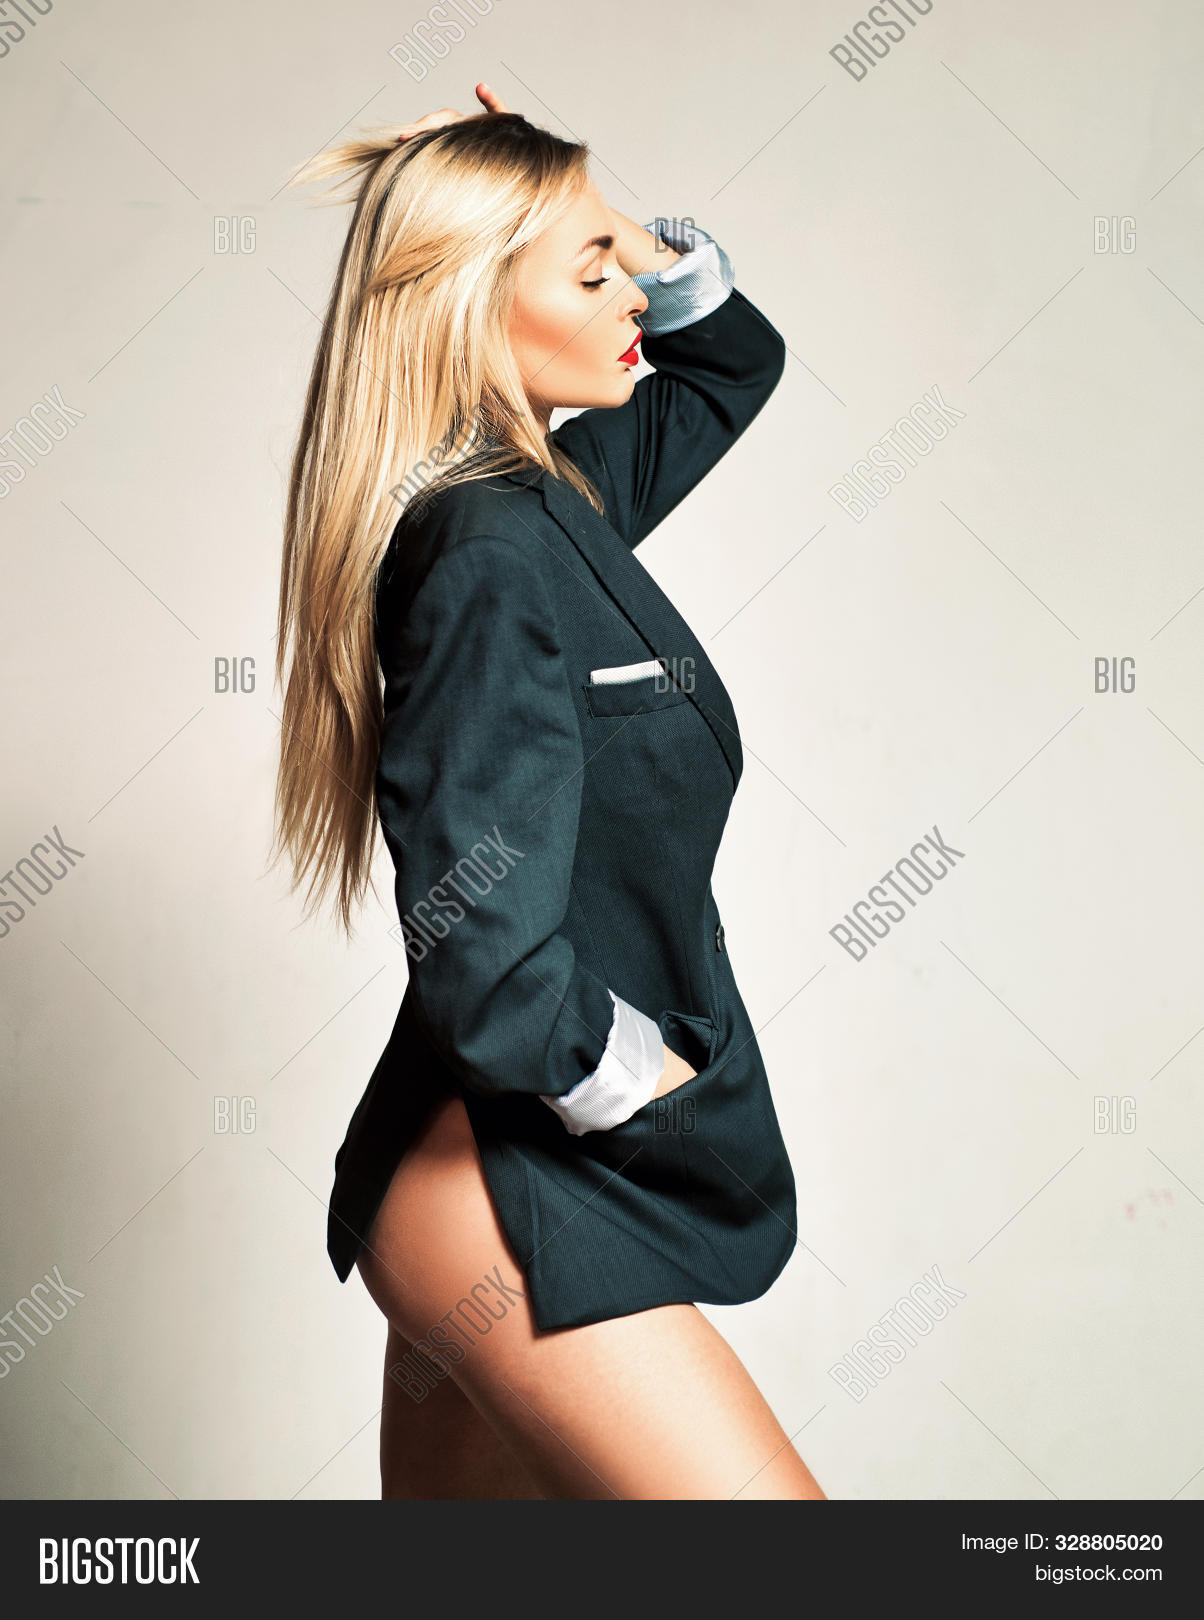 adorable,adult,attractive,beautiful,blonde,body,boss,business,businesswoman,clothes,concept,confident,cute,face,fashion,fashionable,femininity,formal,girl,hair,her,hot,jacket,lady,long,look,make,makeup,manager,masculine,outfit,play,pretty,salon,sexi,sexy,stylish,suit,up,wardrobe,wear,woman,young